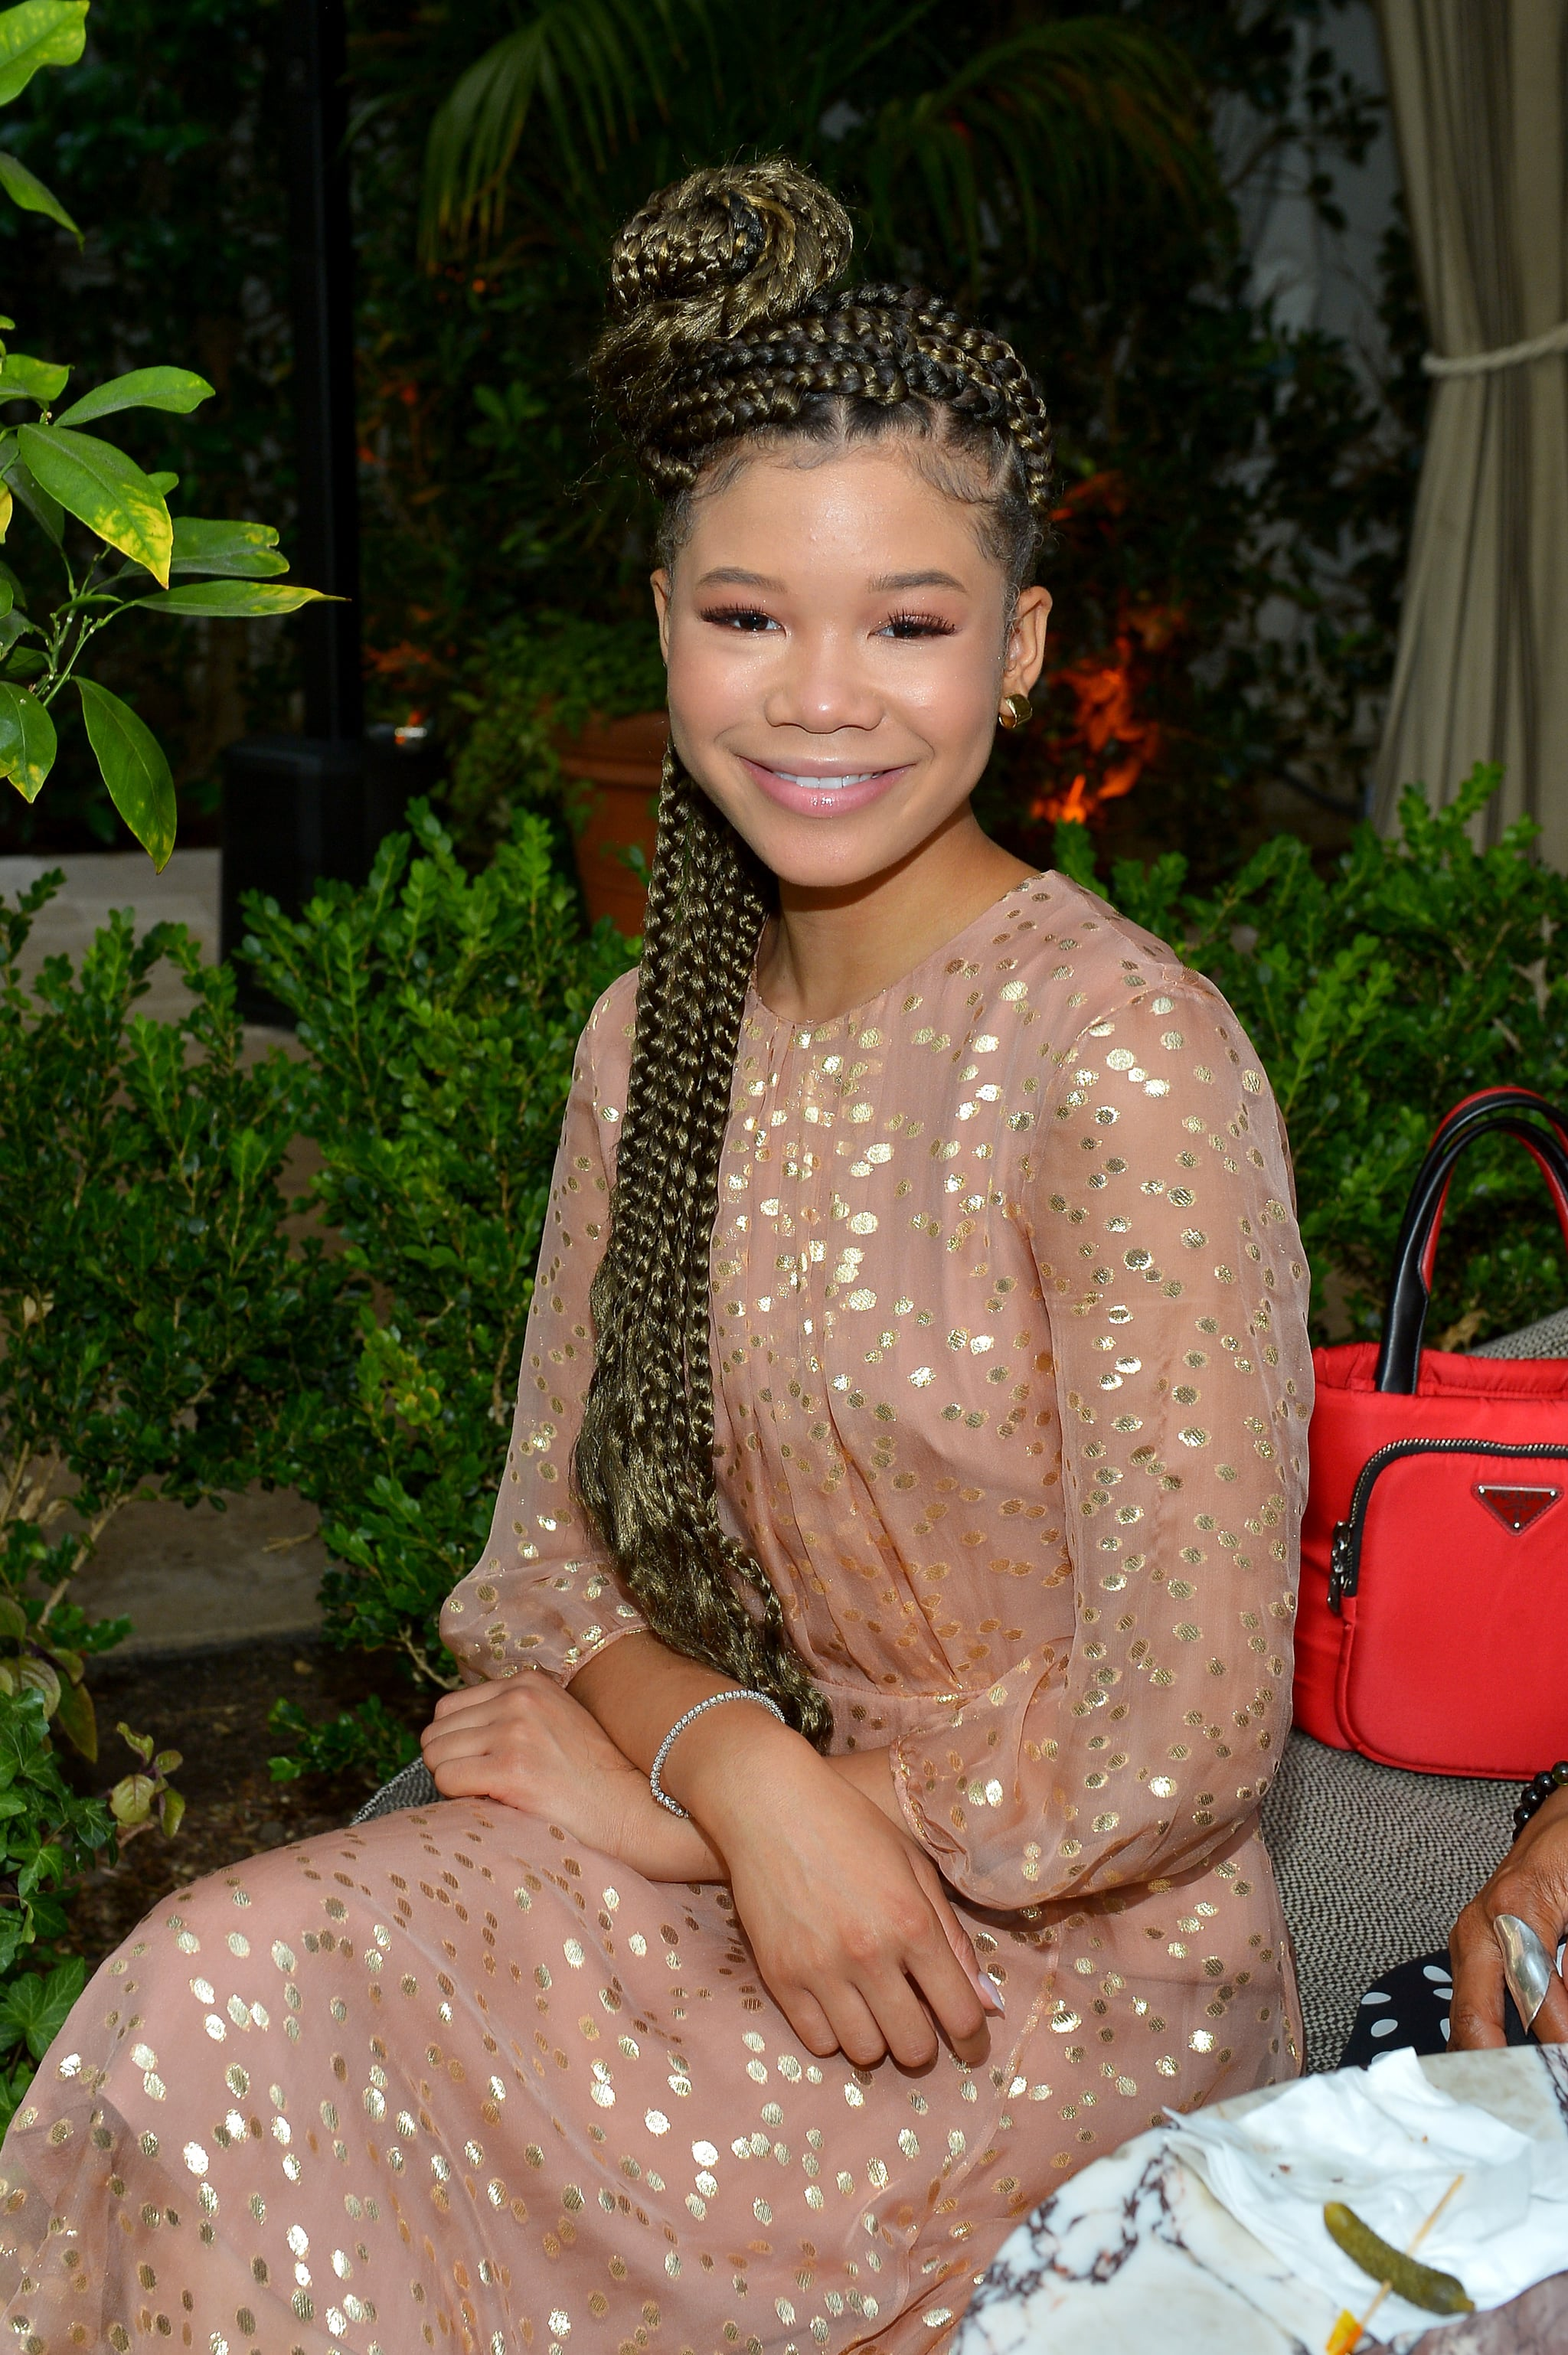 LOS ANGELES, CALIFORNIA - JUNE 11: Storm Reid, wearing Max Mara, attends the 2019 Women In Film Max Mara Face Of The Future, celebrating Elizabeth Debicki, at Chateau Marmont on June 11, 2019 in Los Angeles, California. (Photo by Donato Sardella/Getty Images for Max Mara)